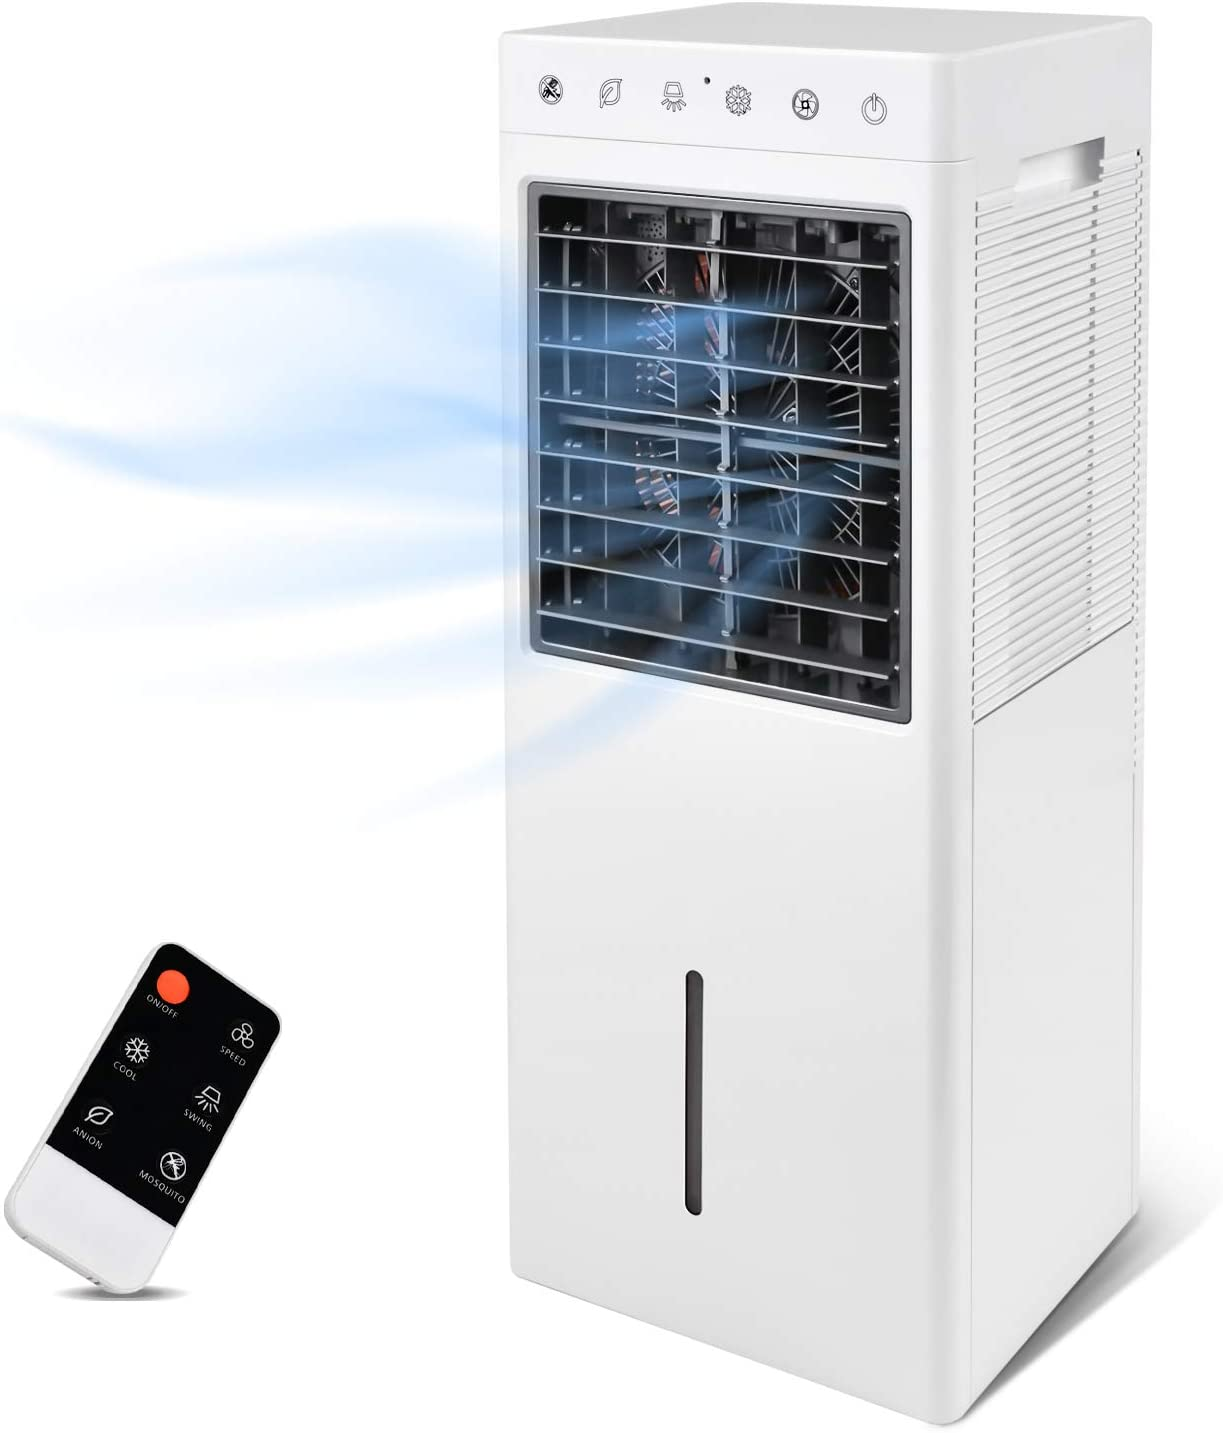 Simple Deluxe 30'' Evaporative Air Cooler Fan with Humidification, Repellent and Anion Function, 2 Gallon Water Tank, 3 Speeds Setting, Remote Control, White